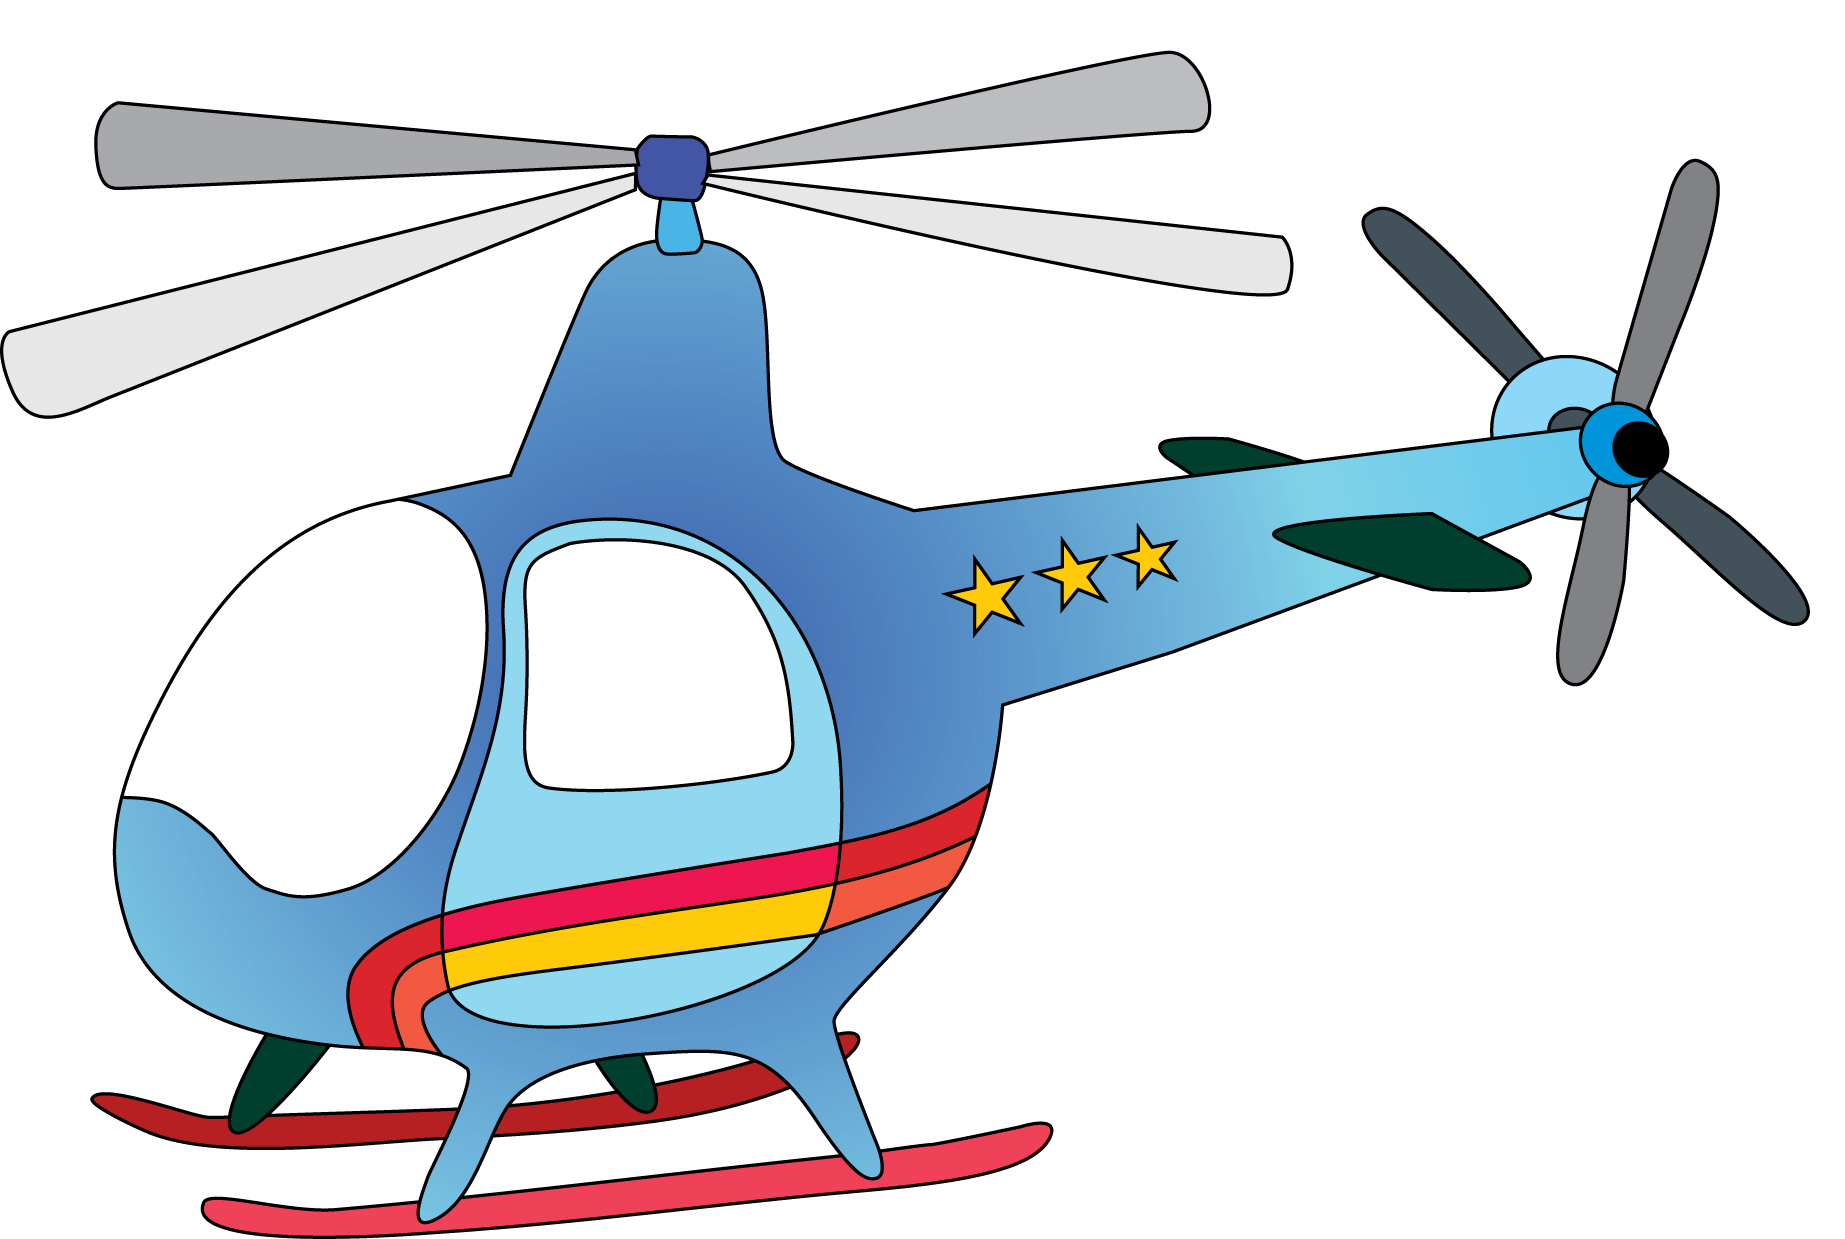 helicopter clip art clipart panda free clipart images rh clipartpanda com clipart helicopter clipart helicopter free